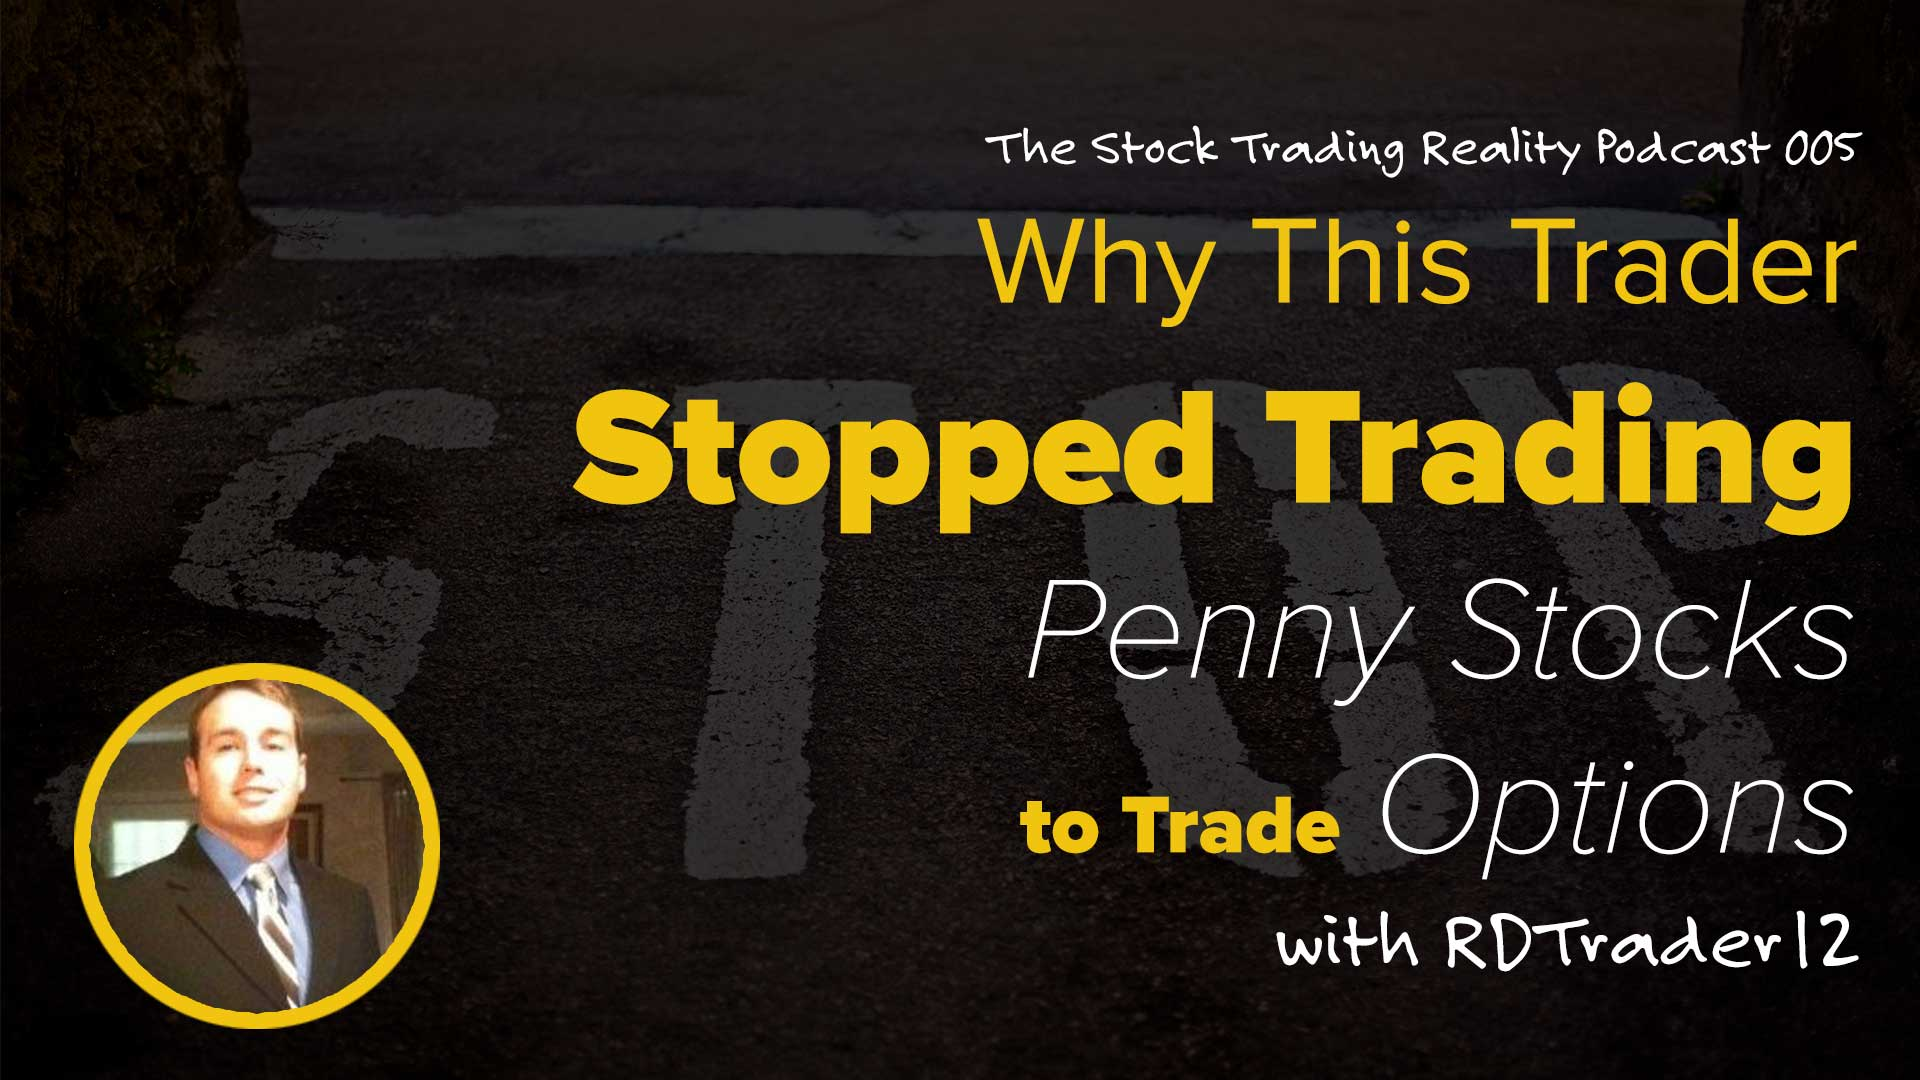 STR 005: Why This Trader Stopped Trading Penny Stocks to Trade Options